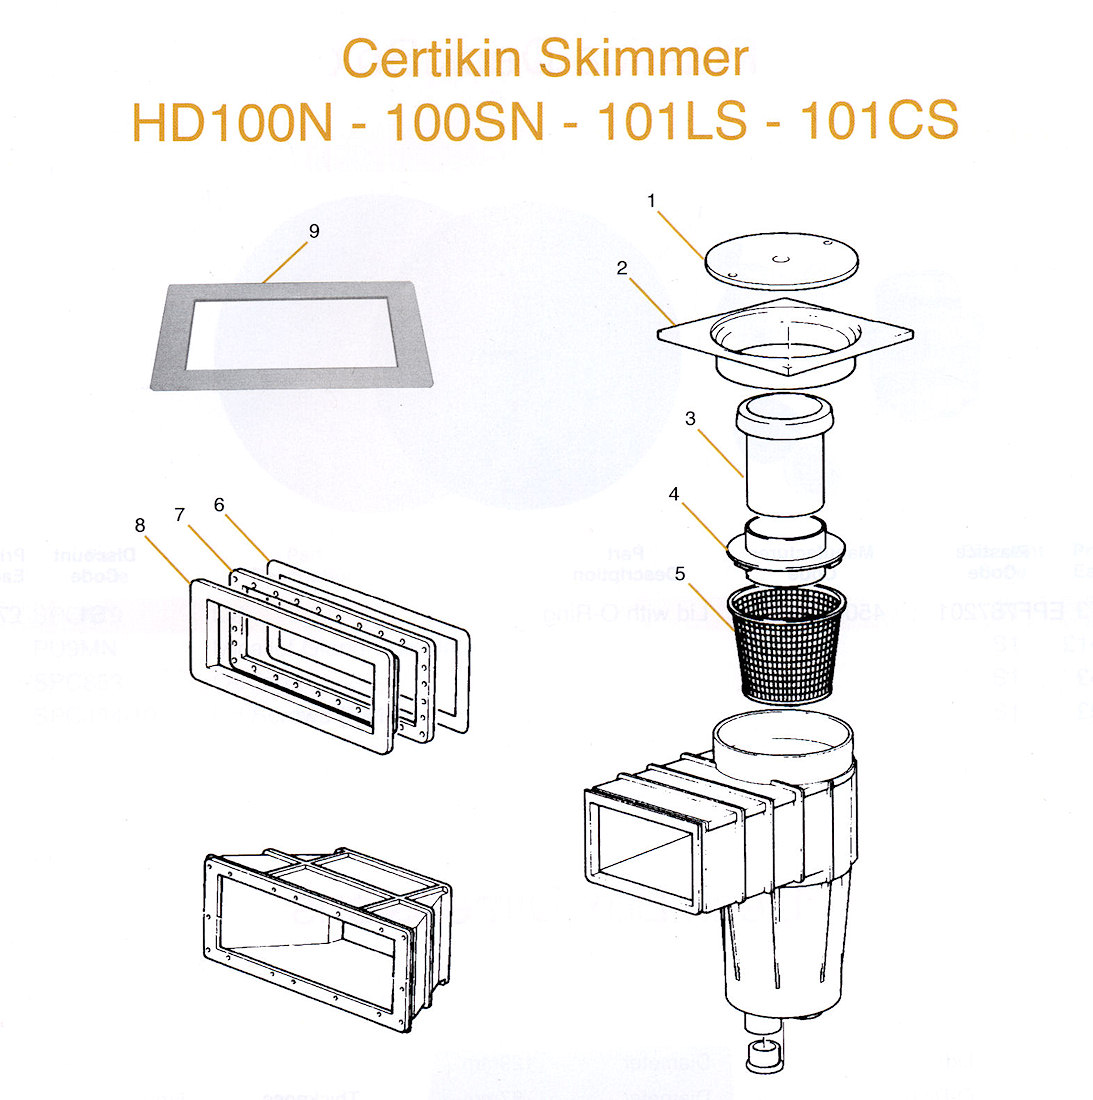 Certikin Skimmer Spares For Hot Tub And Spa Parts Accessories Packs Equipment Tap To Expand